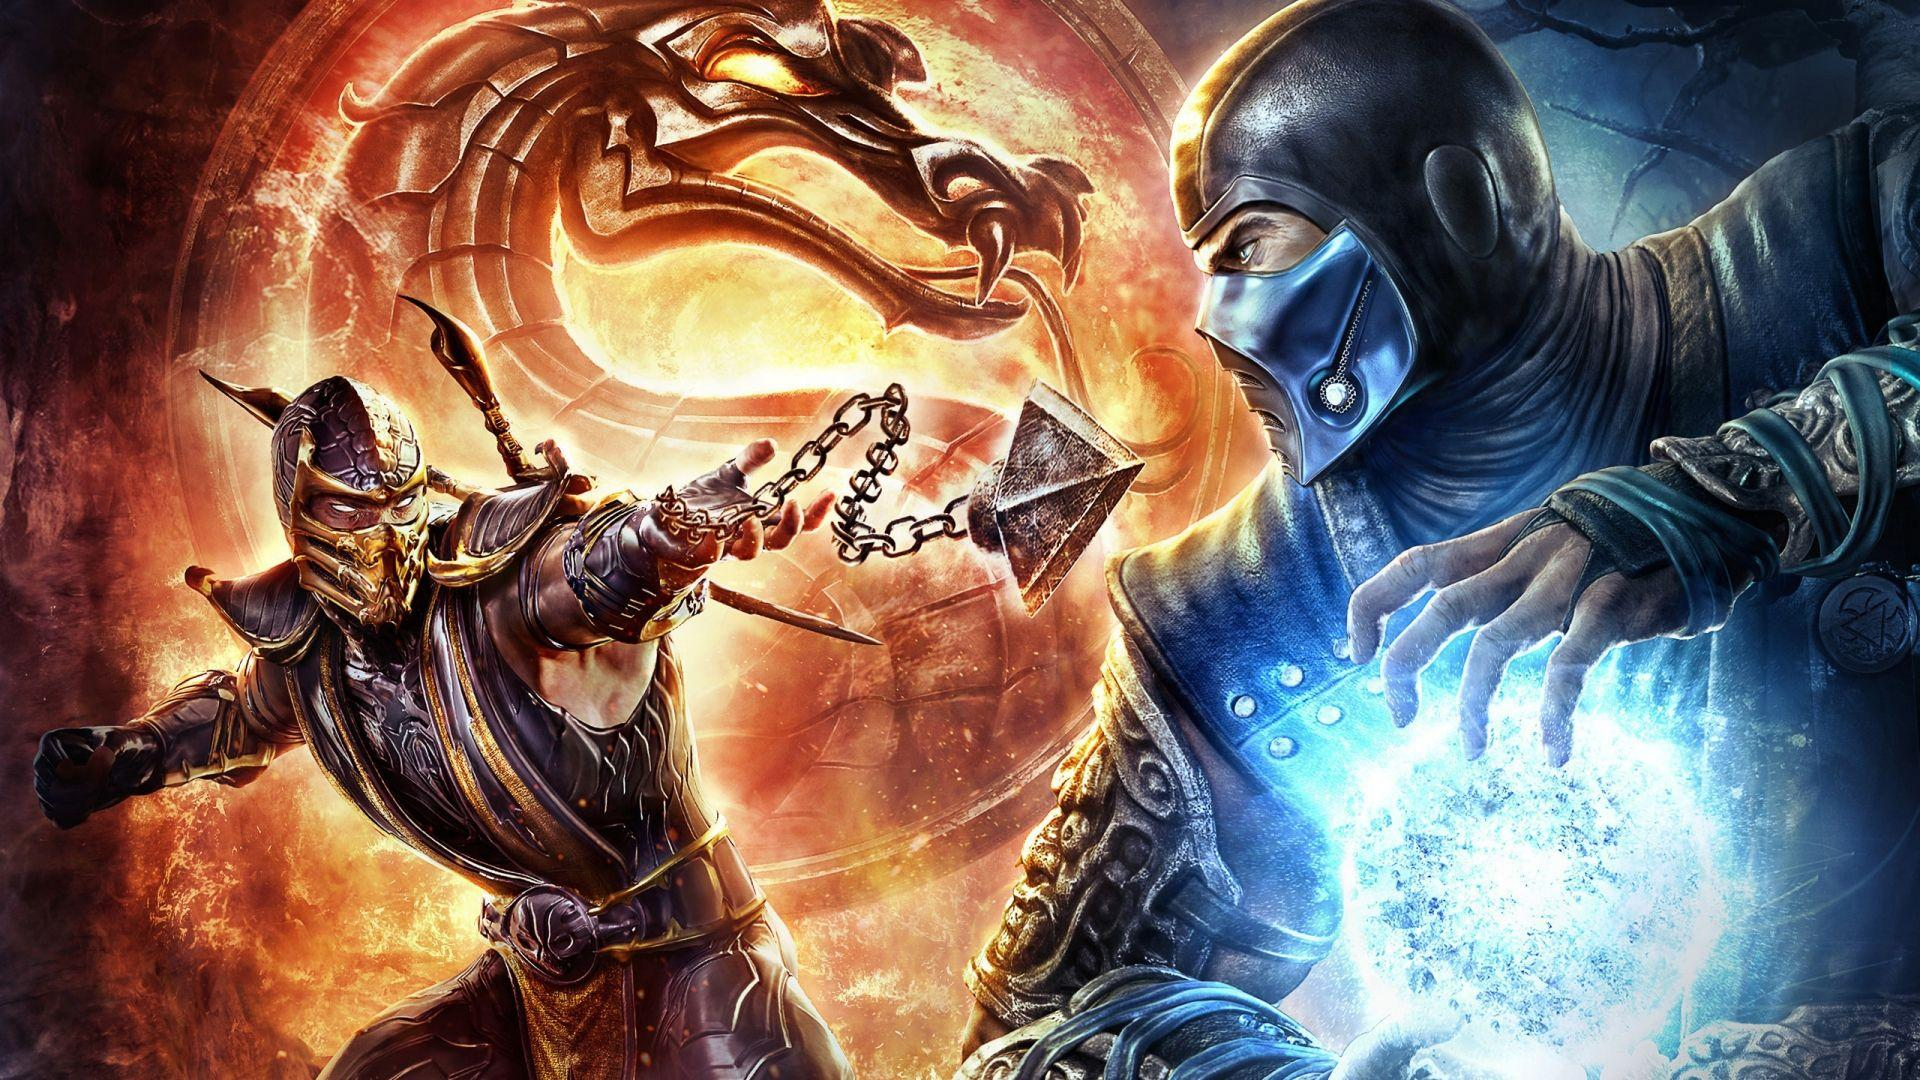 mortal kombat scorpion vs sub zero wallpaper